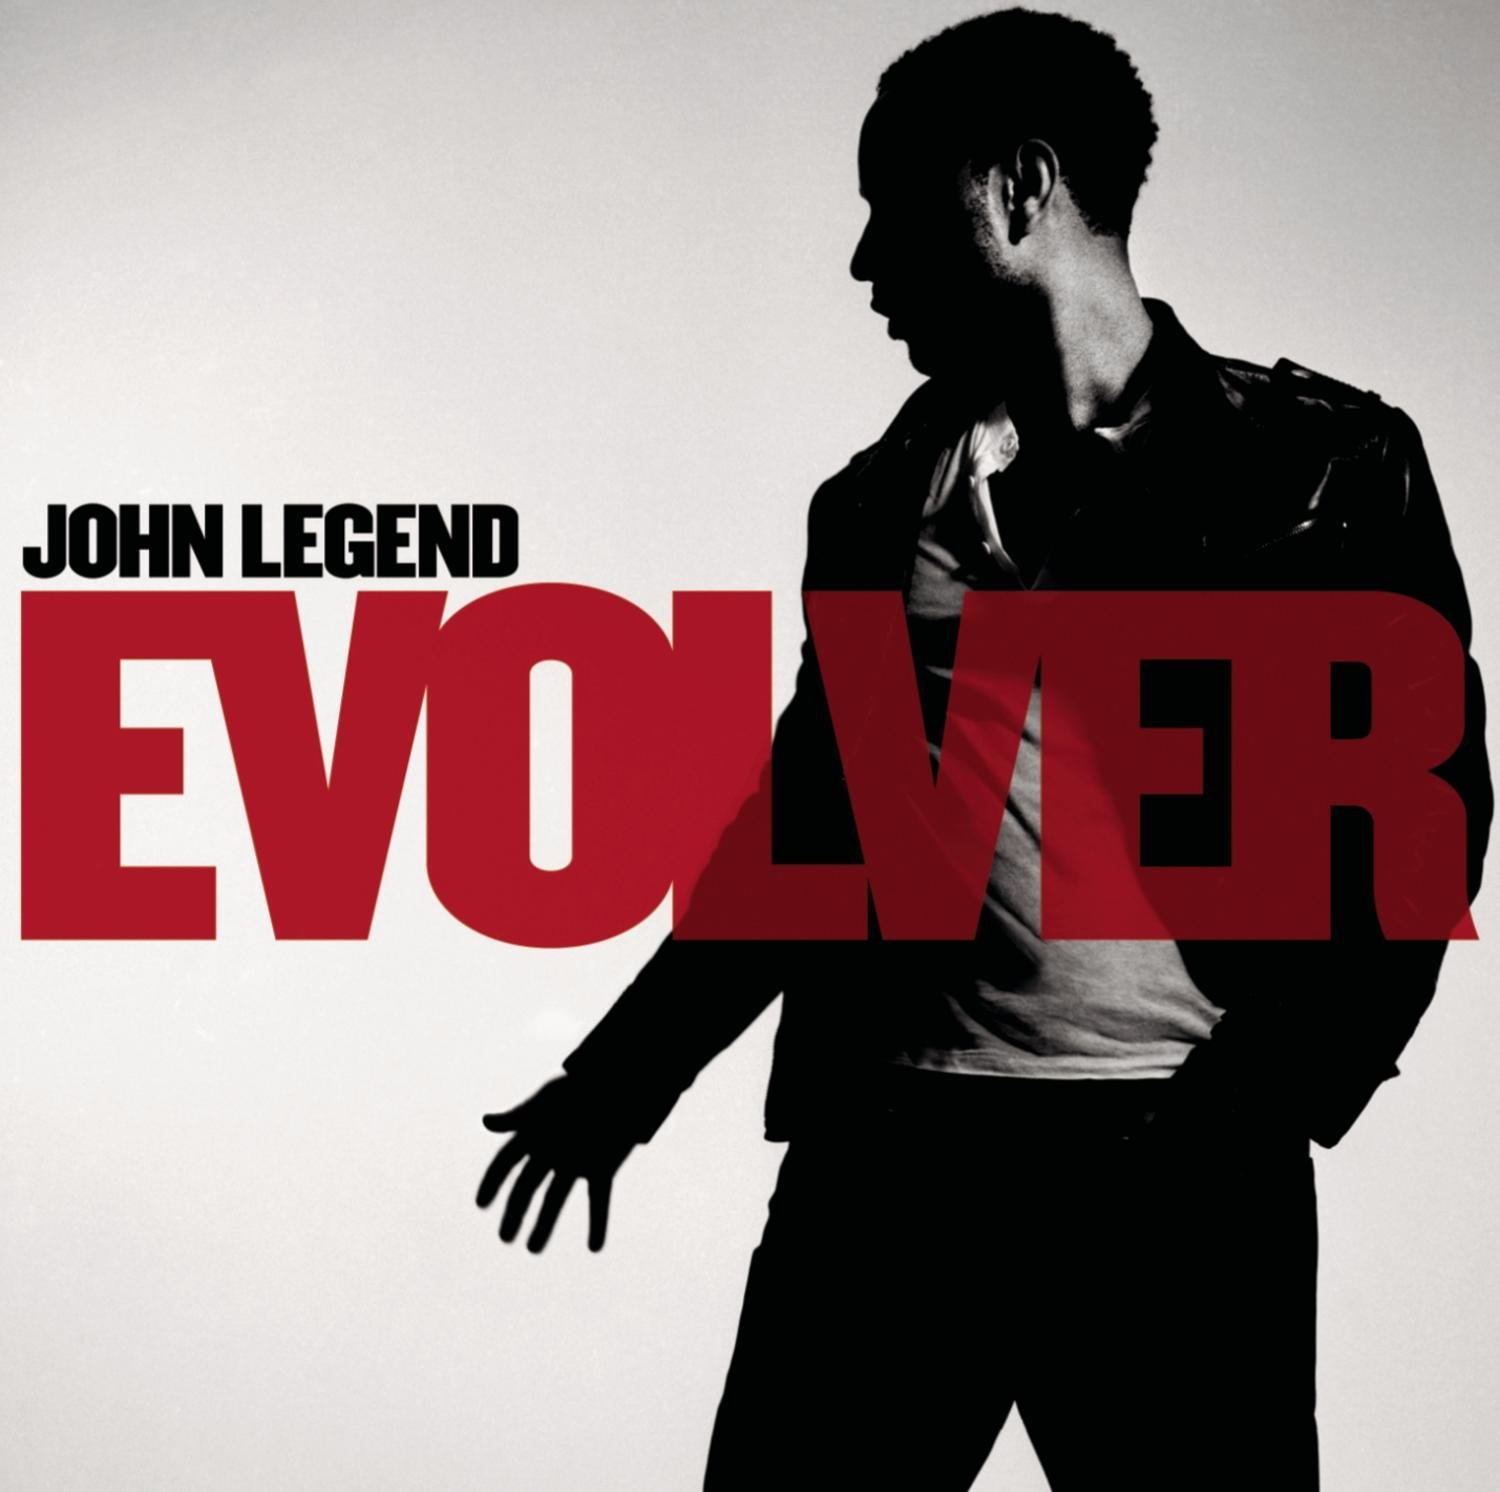 John Legend, Evolver